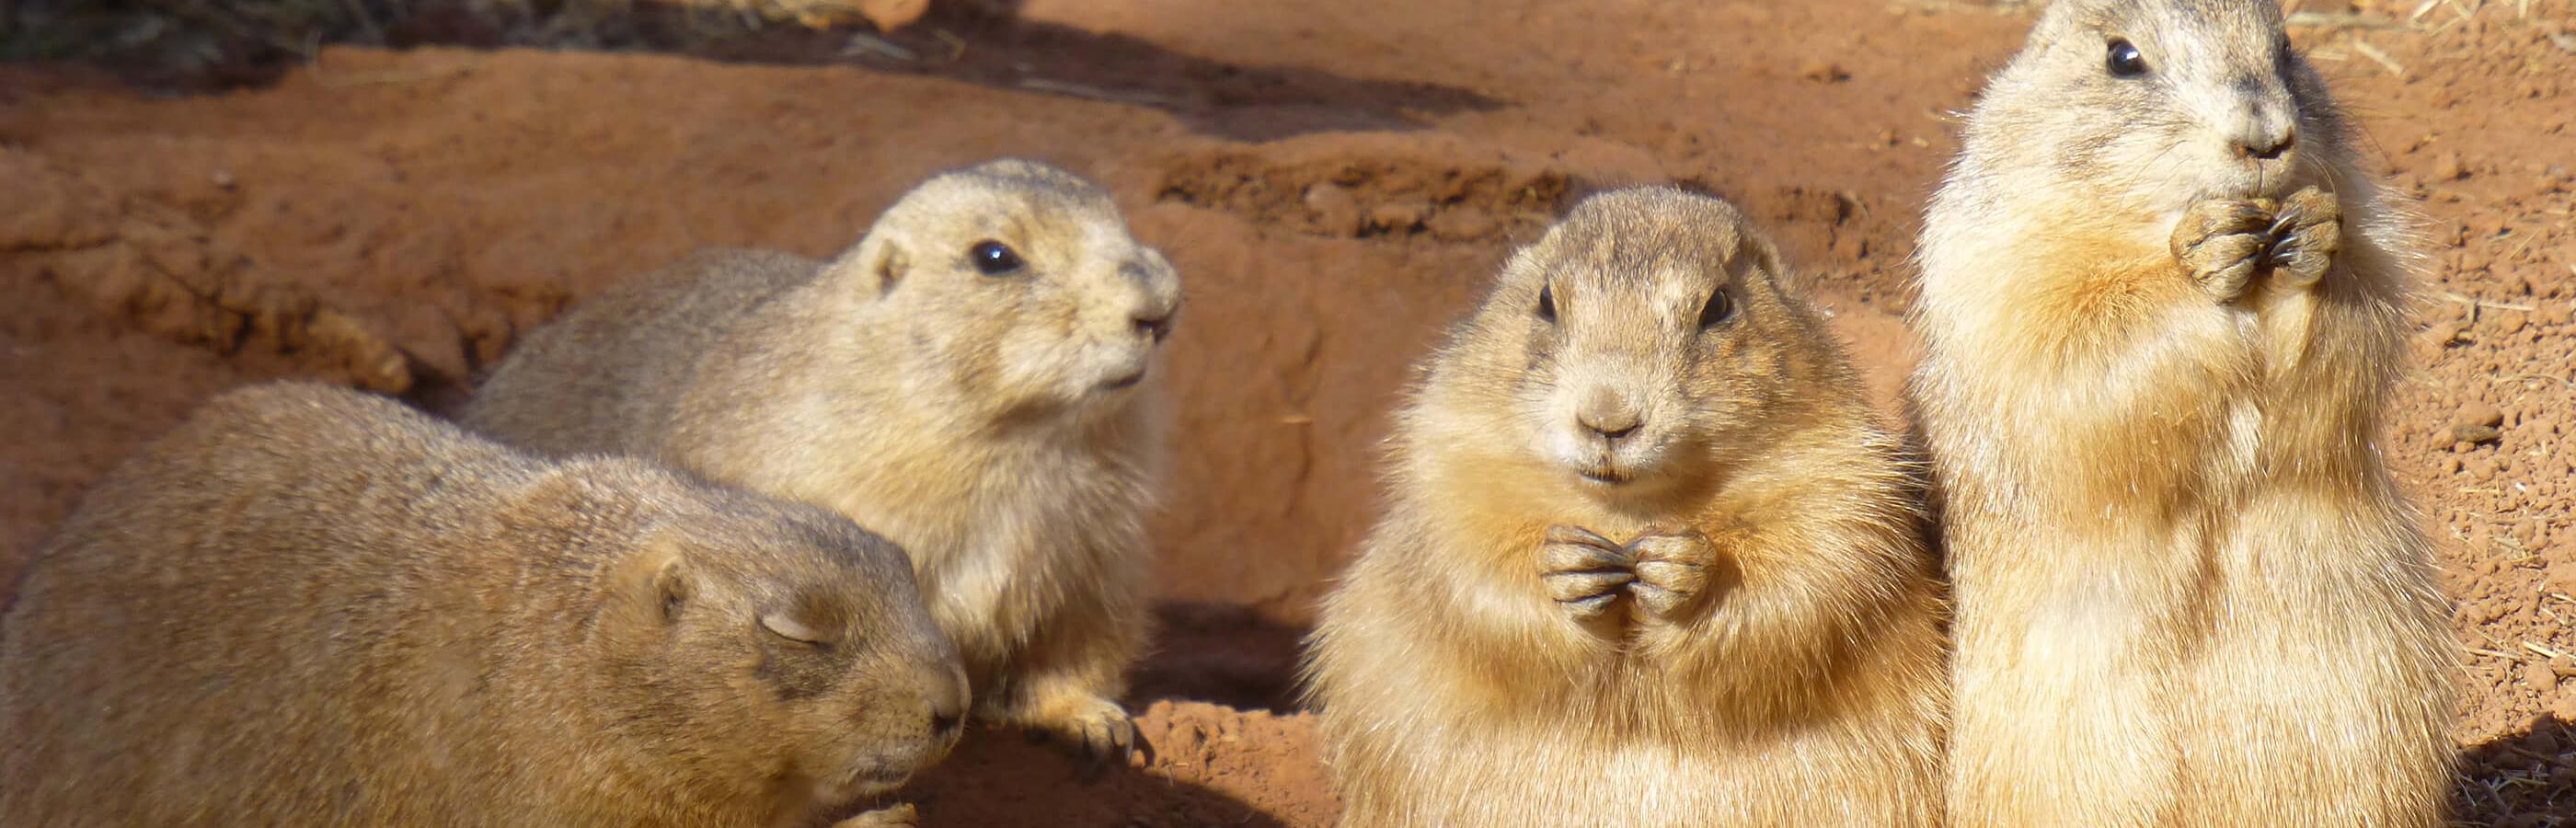 Prairie Dogs at Reptile Gardens